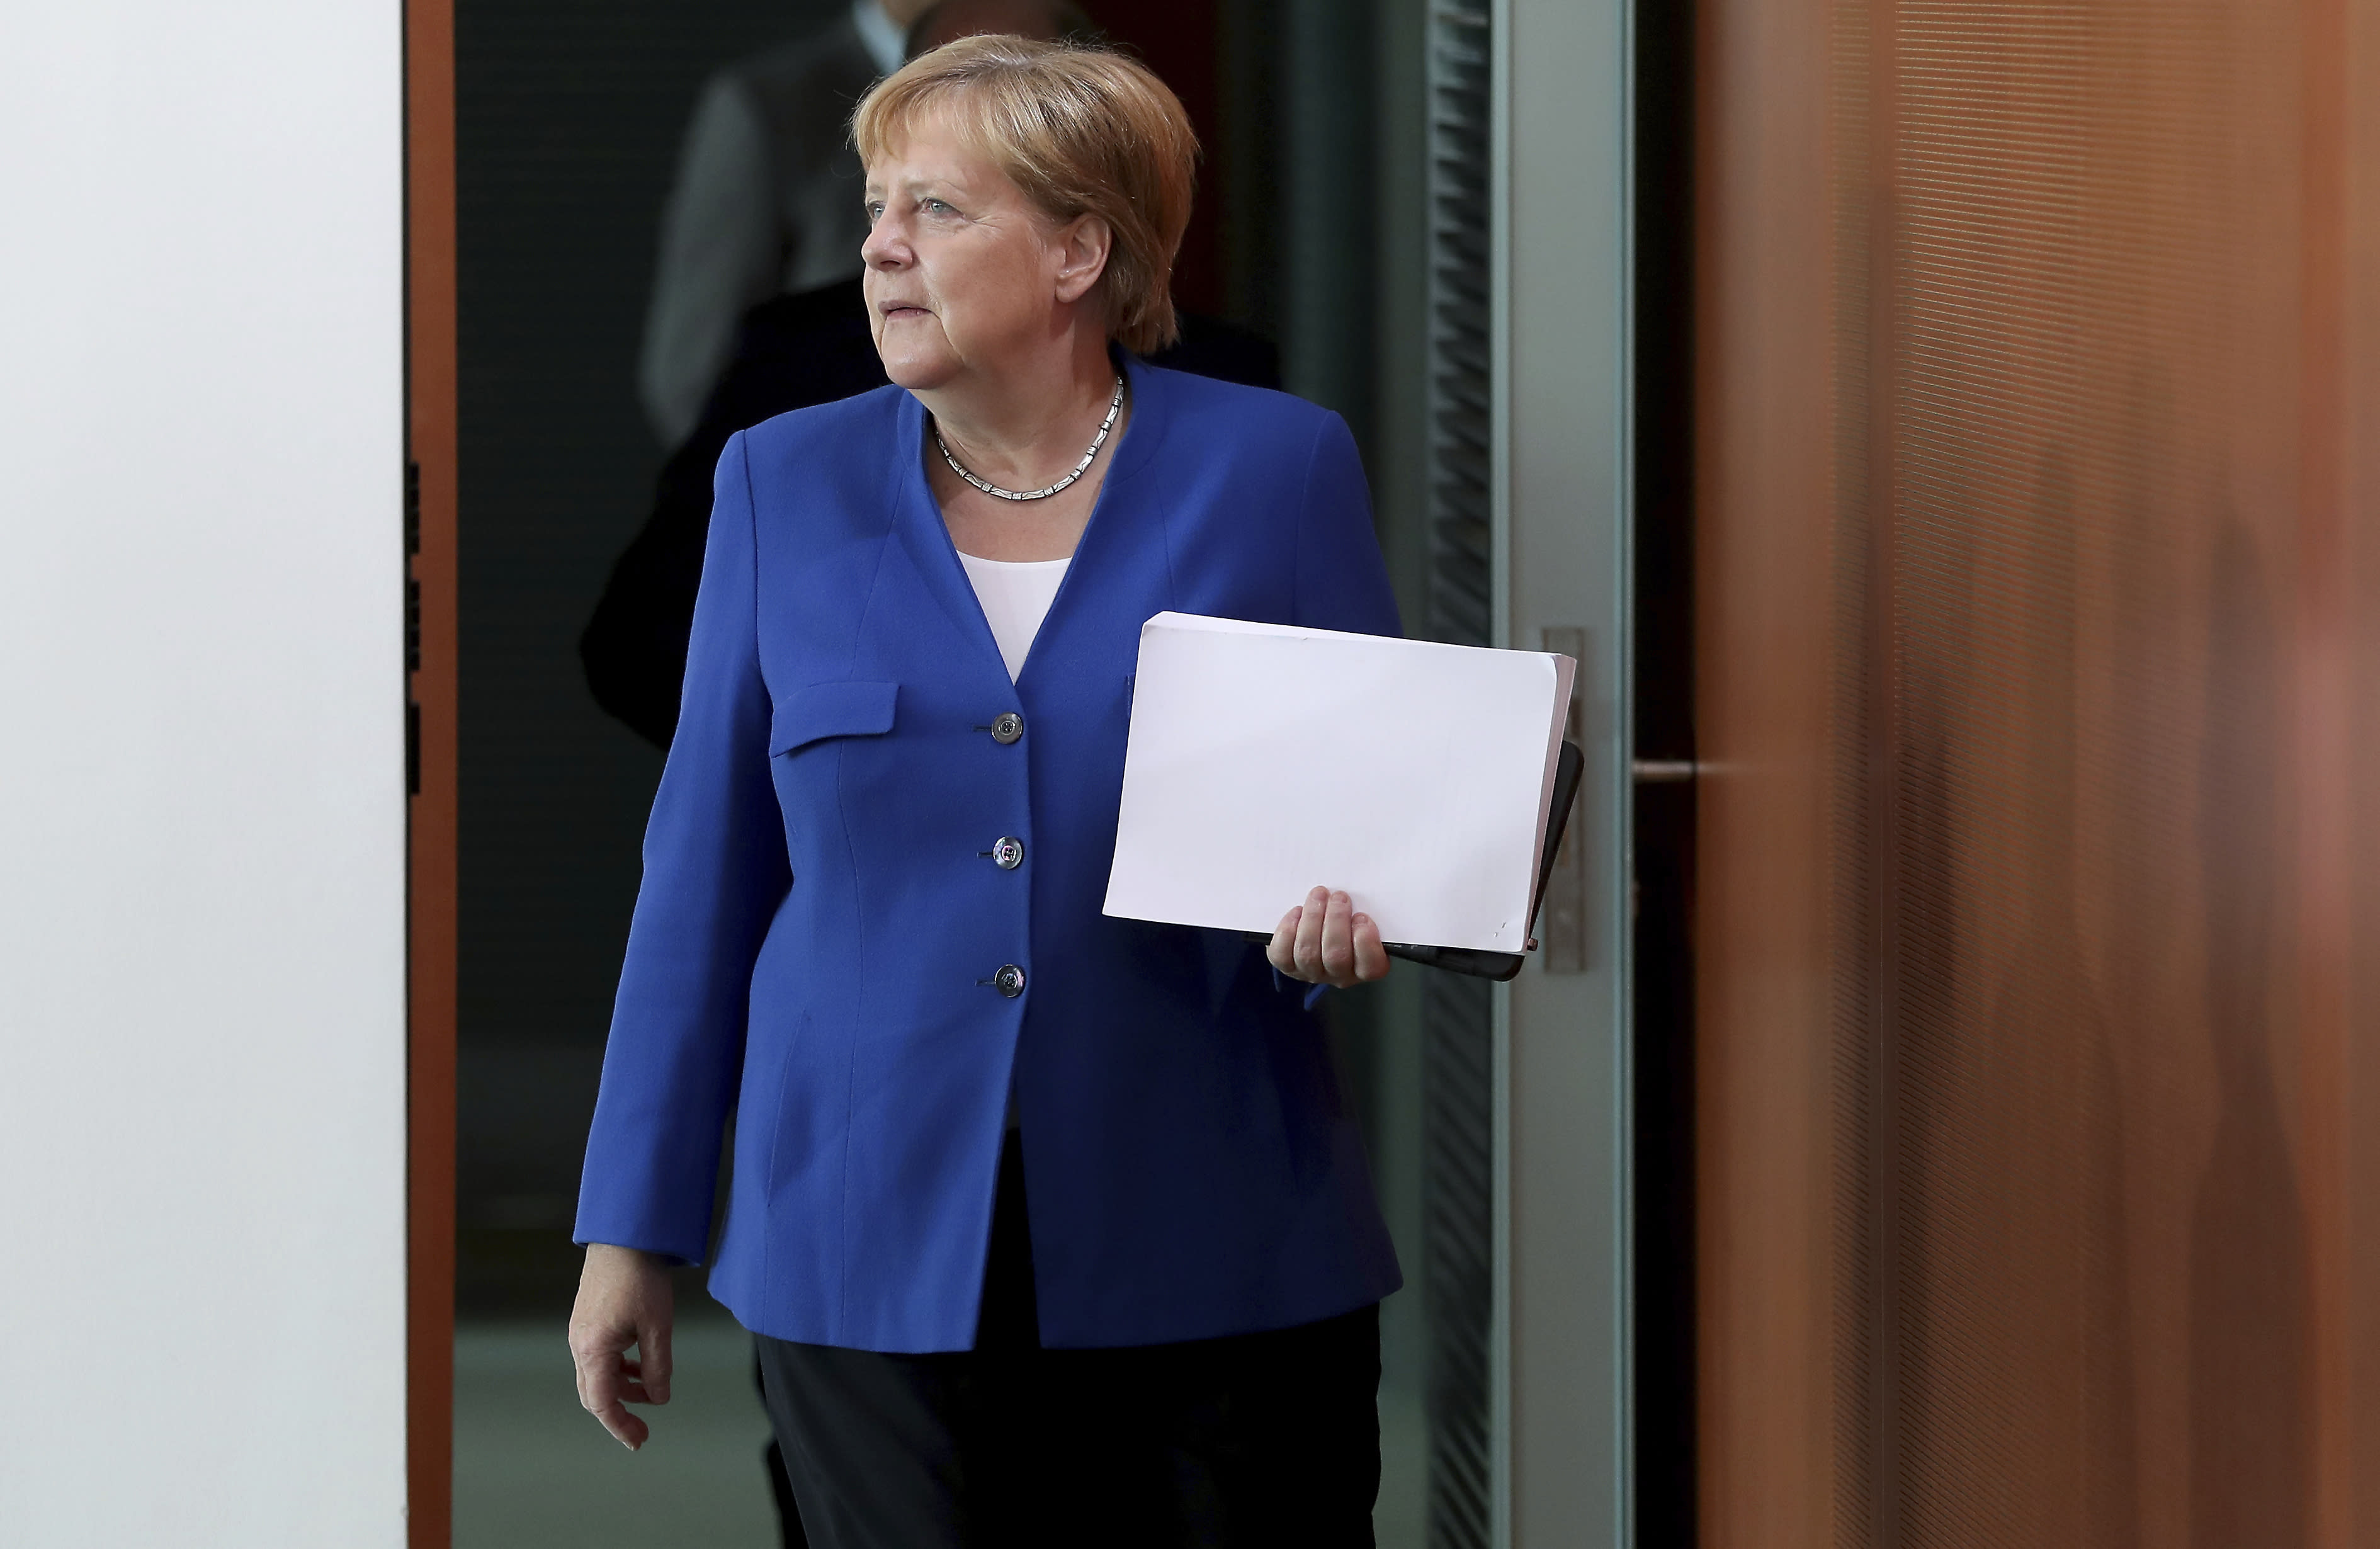 German Chancellor Angela Merkel arrives for the weekly cabinet meeting at the Chancellery in Berlin, Germany, Wednesday, Aug. 21, 2019. The German government sold 30-year bonds at a negative interest rate Wednesday Aug. 21, 2019, in a sign of the clouds over markets and future growth as well as increased expectations that more central bank stimulus is likely on the way.(AP Photo/Michael Sohn)